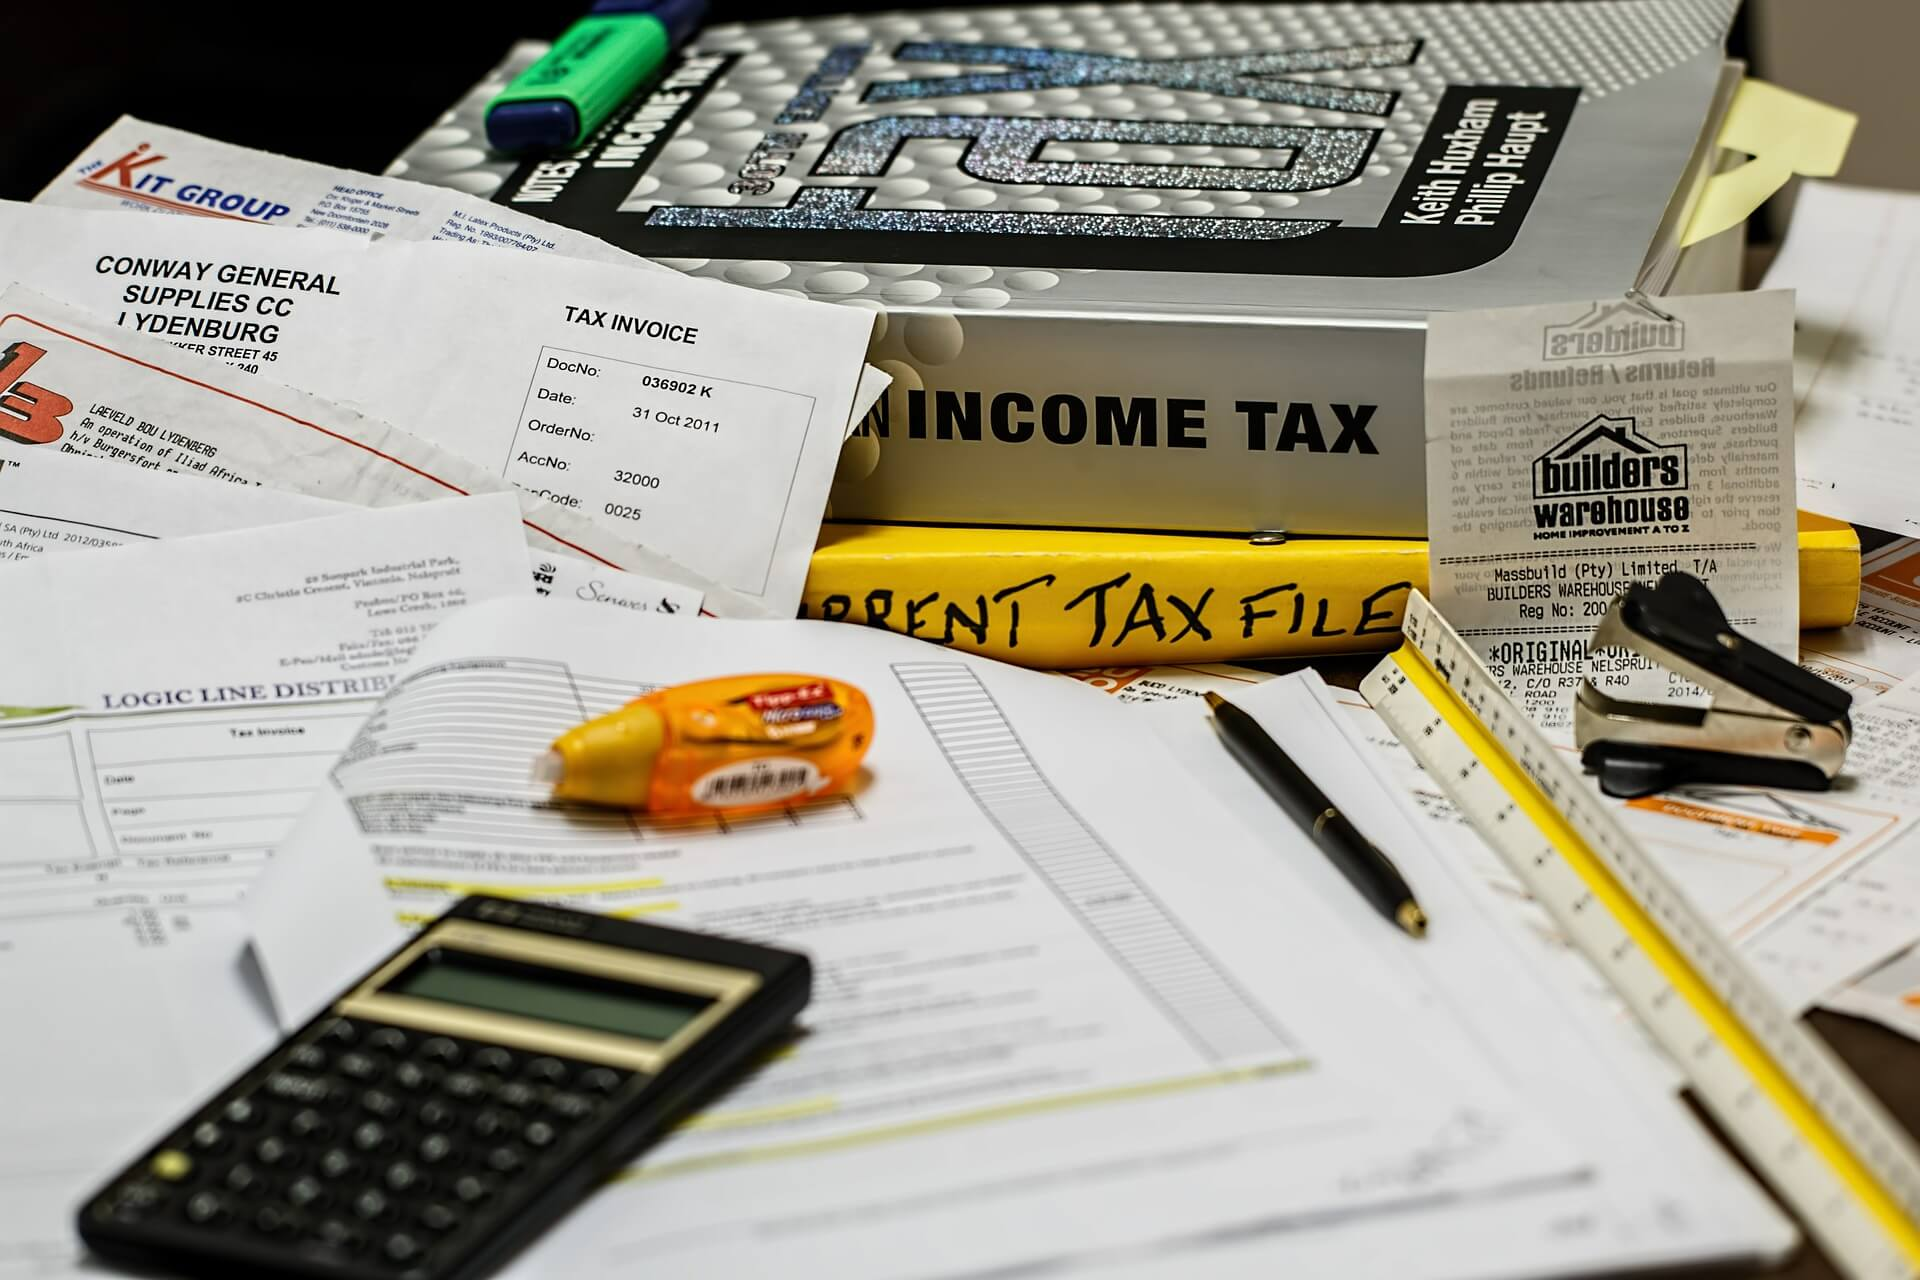 Tax changes with the new tax plan